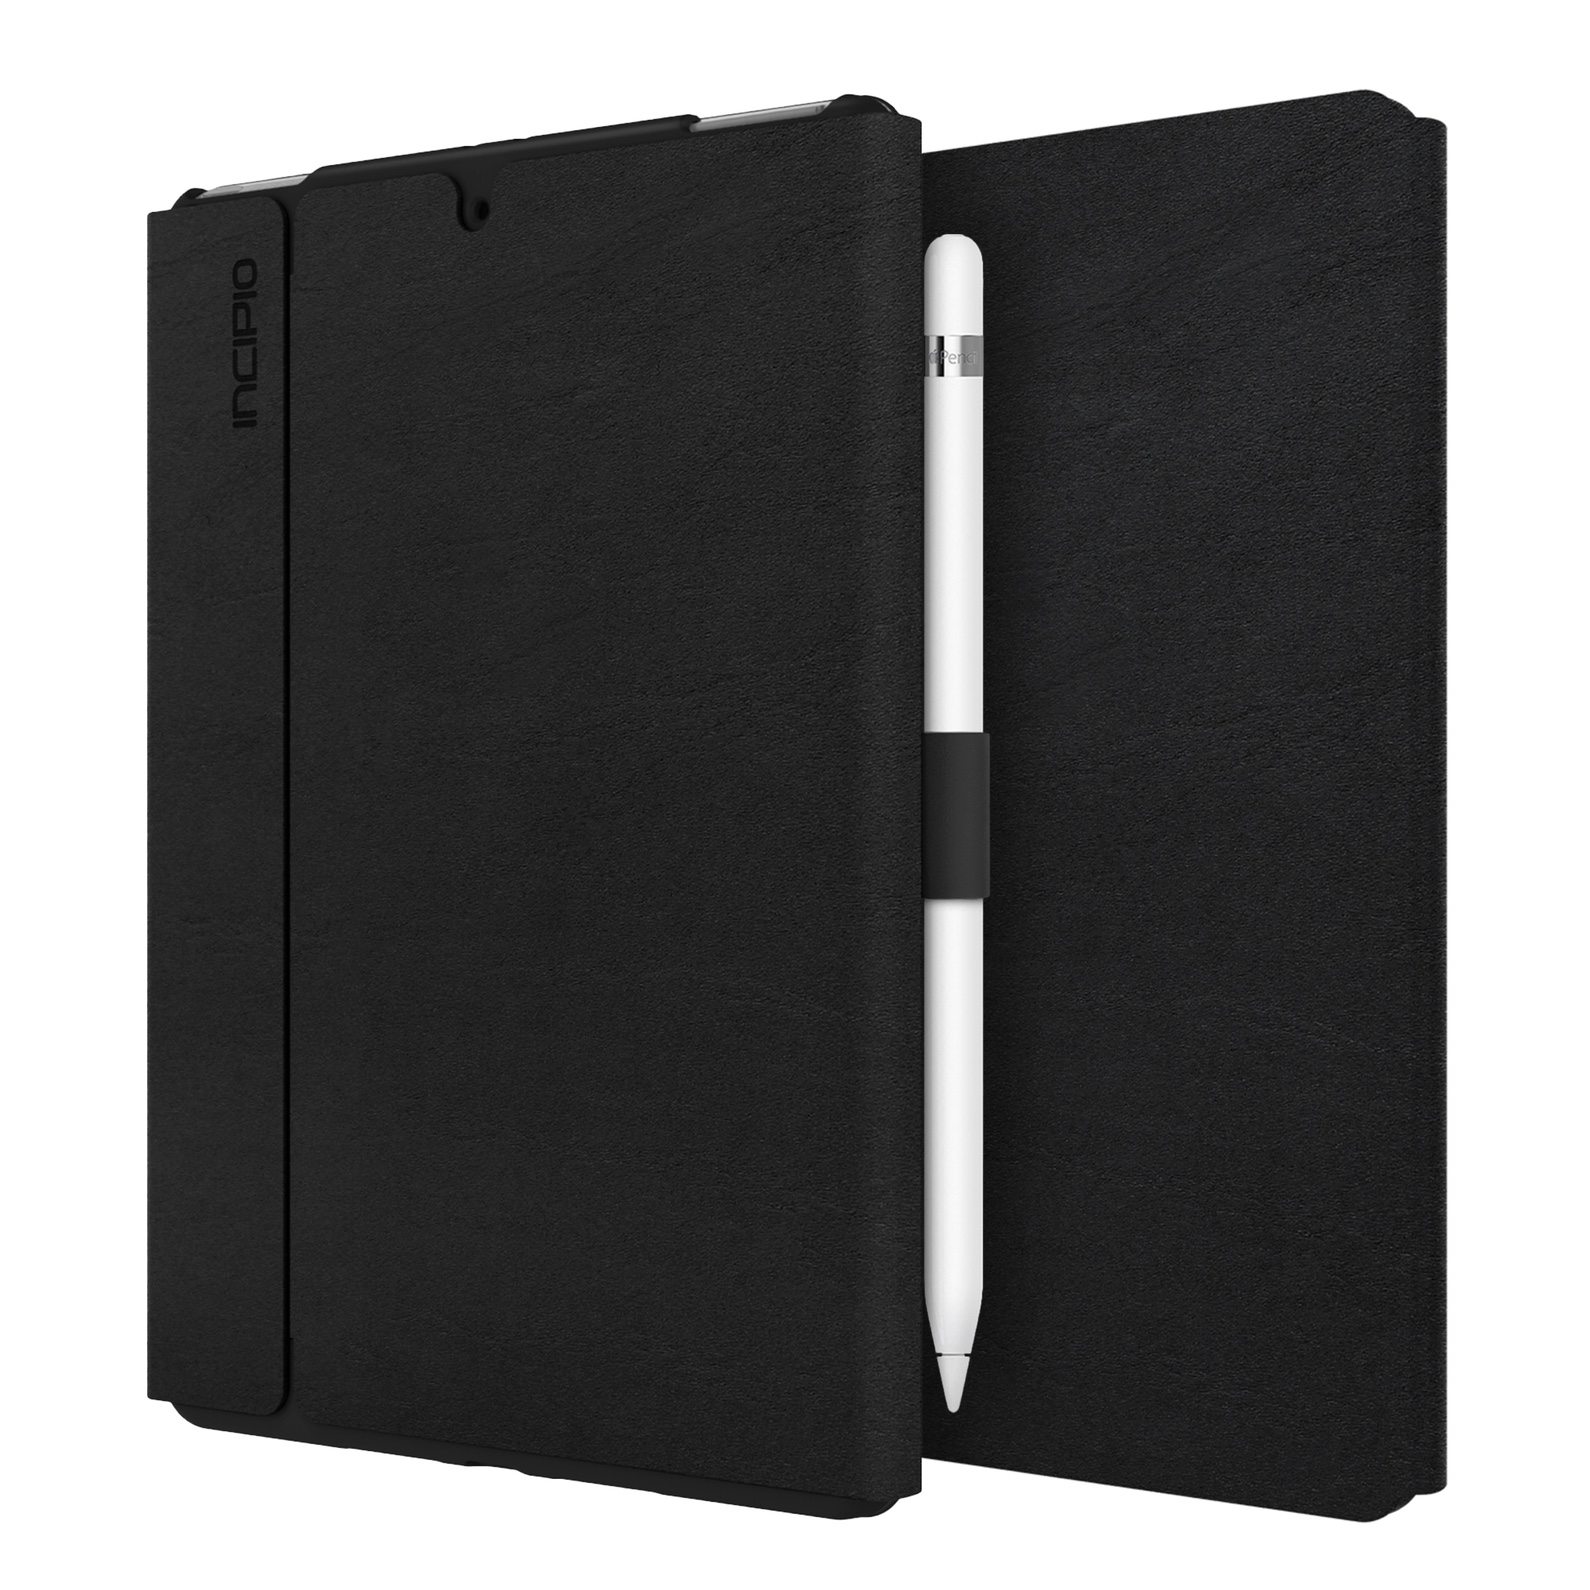 iPAD AIR 2019 10.5 pouces Etui Folio Protection Faraday Noir